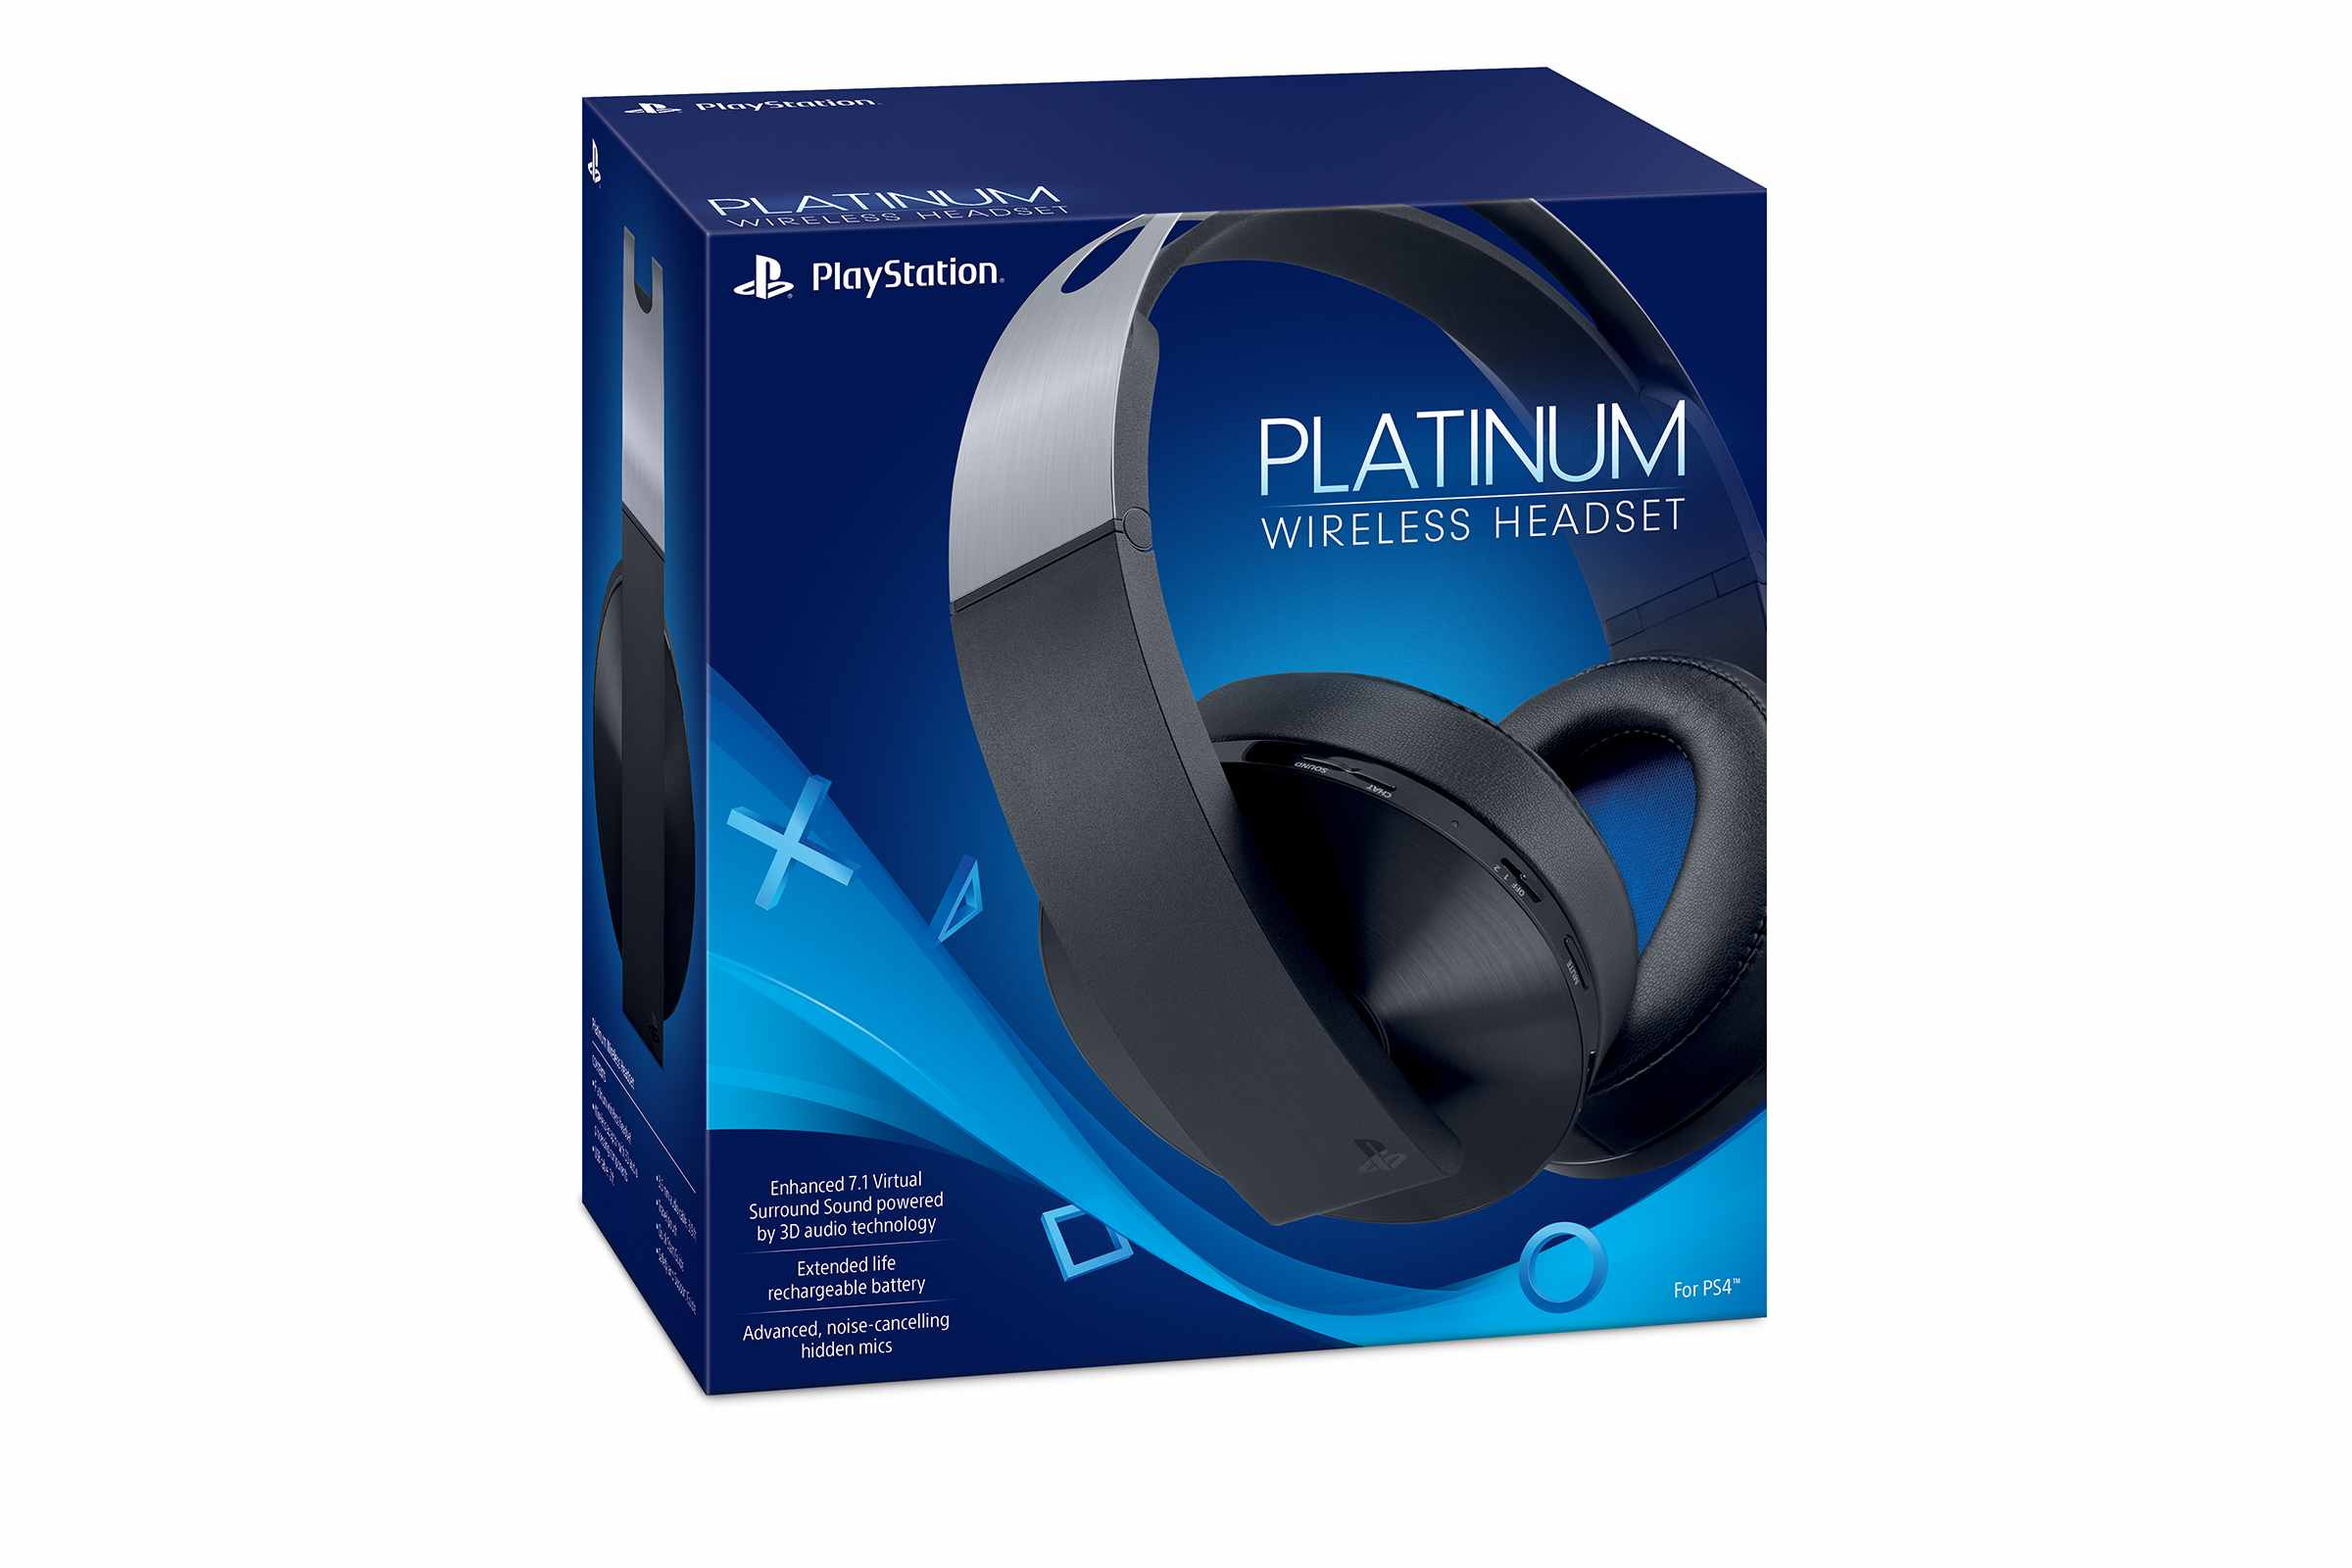 PS4 - Platinum Wireless Headset